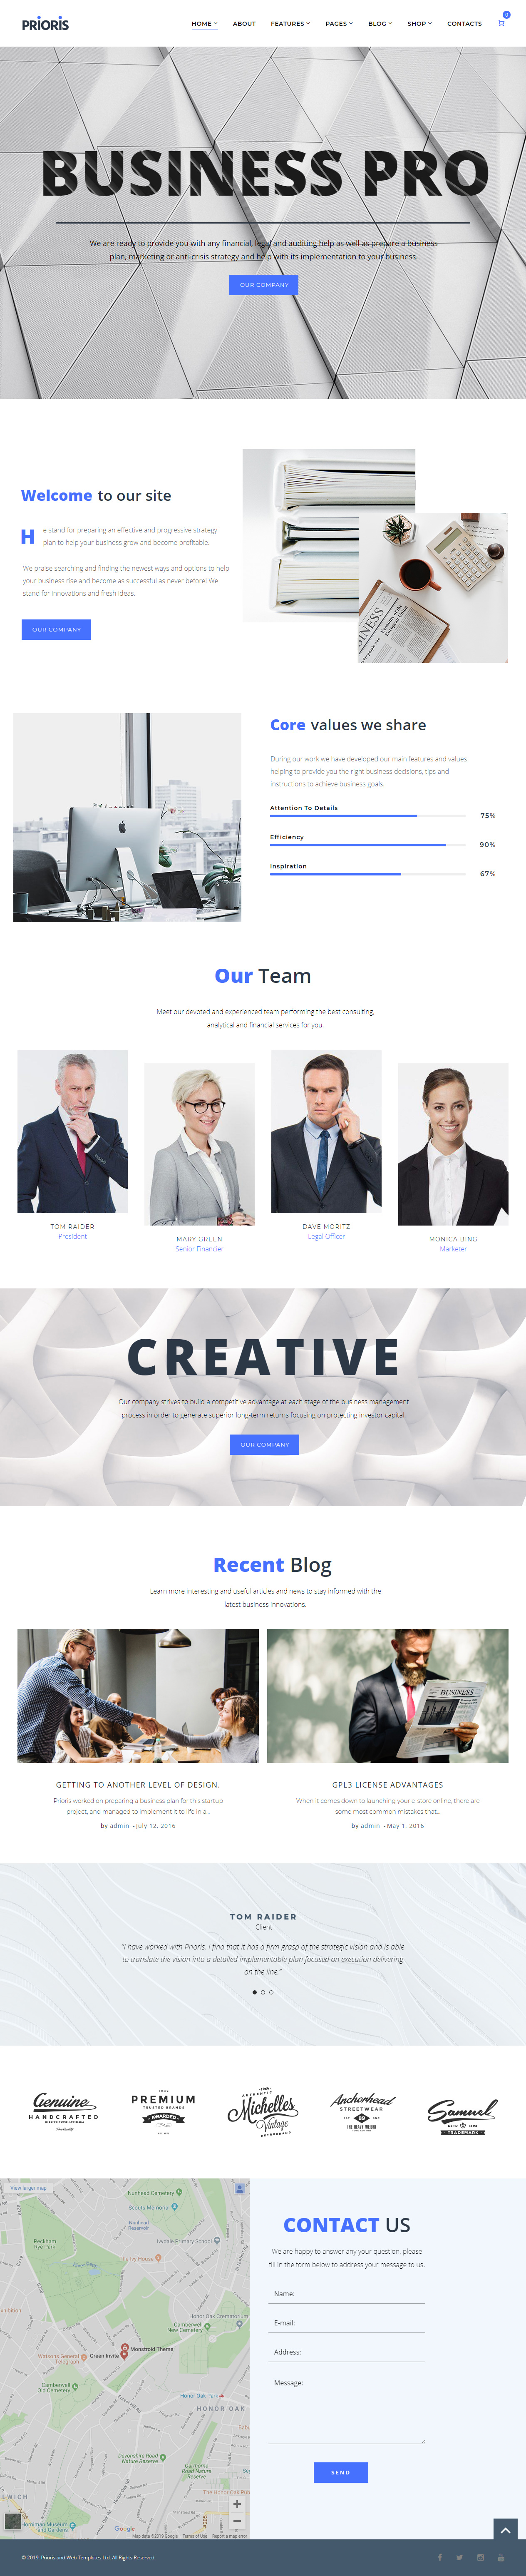 35+ Best Digital Agency Wordpress Themes 2019 - Great for